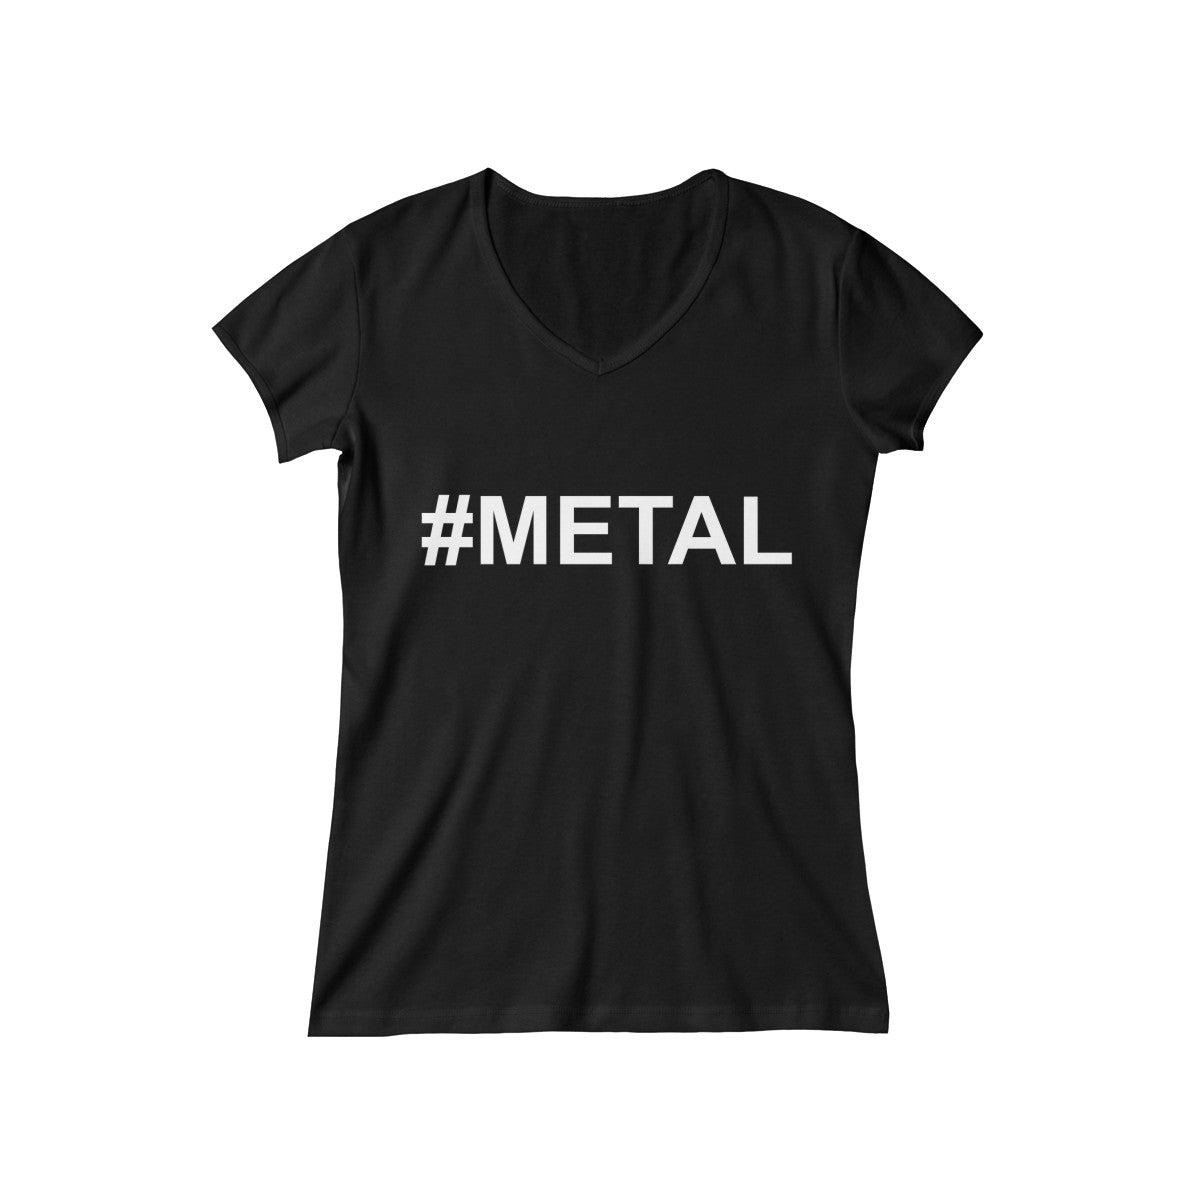 Women's #METAL V-Neck Tee